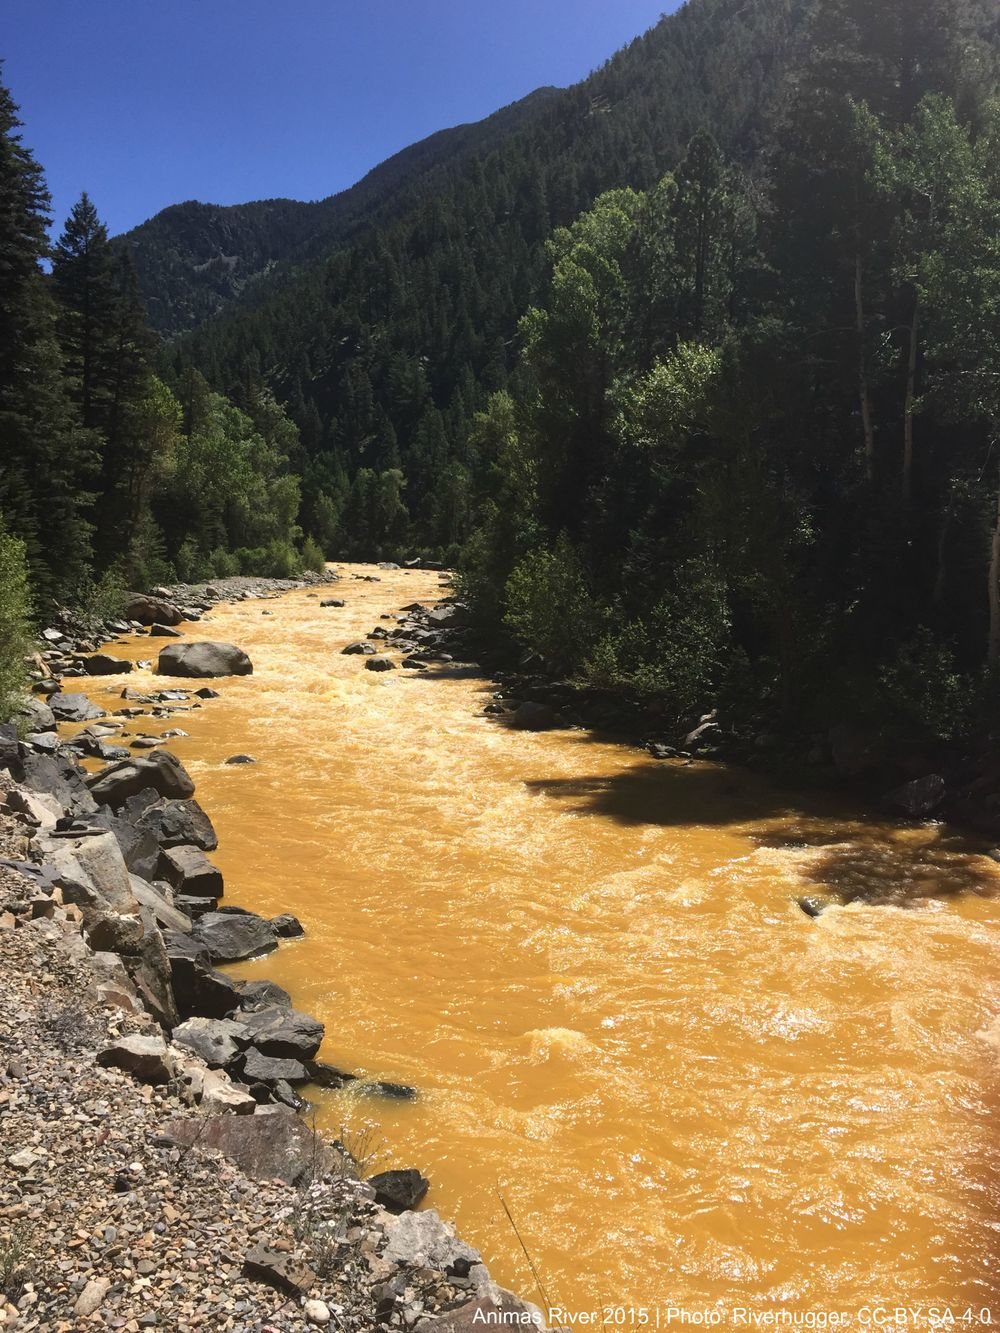 The Animas River between Silverton and Durango in Colorado, USA, within 24 hours of the 2015 Gold King Mine waste water spill. | Photo By RiverHugger, CC BY-SA 4.0